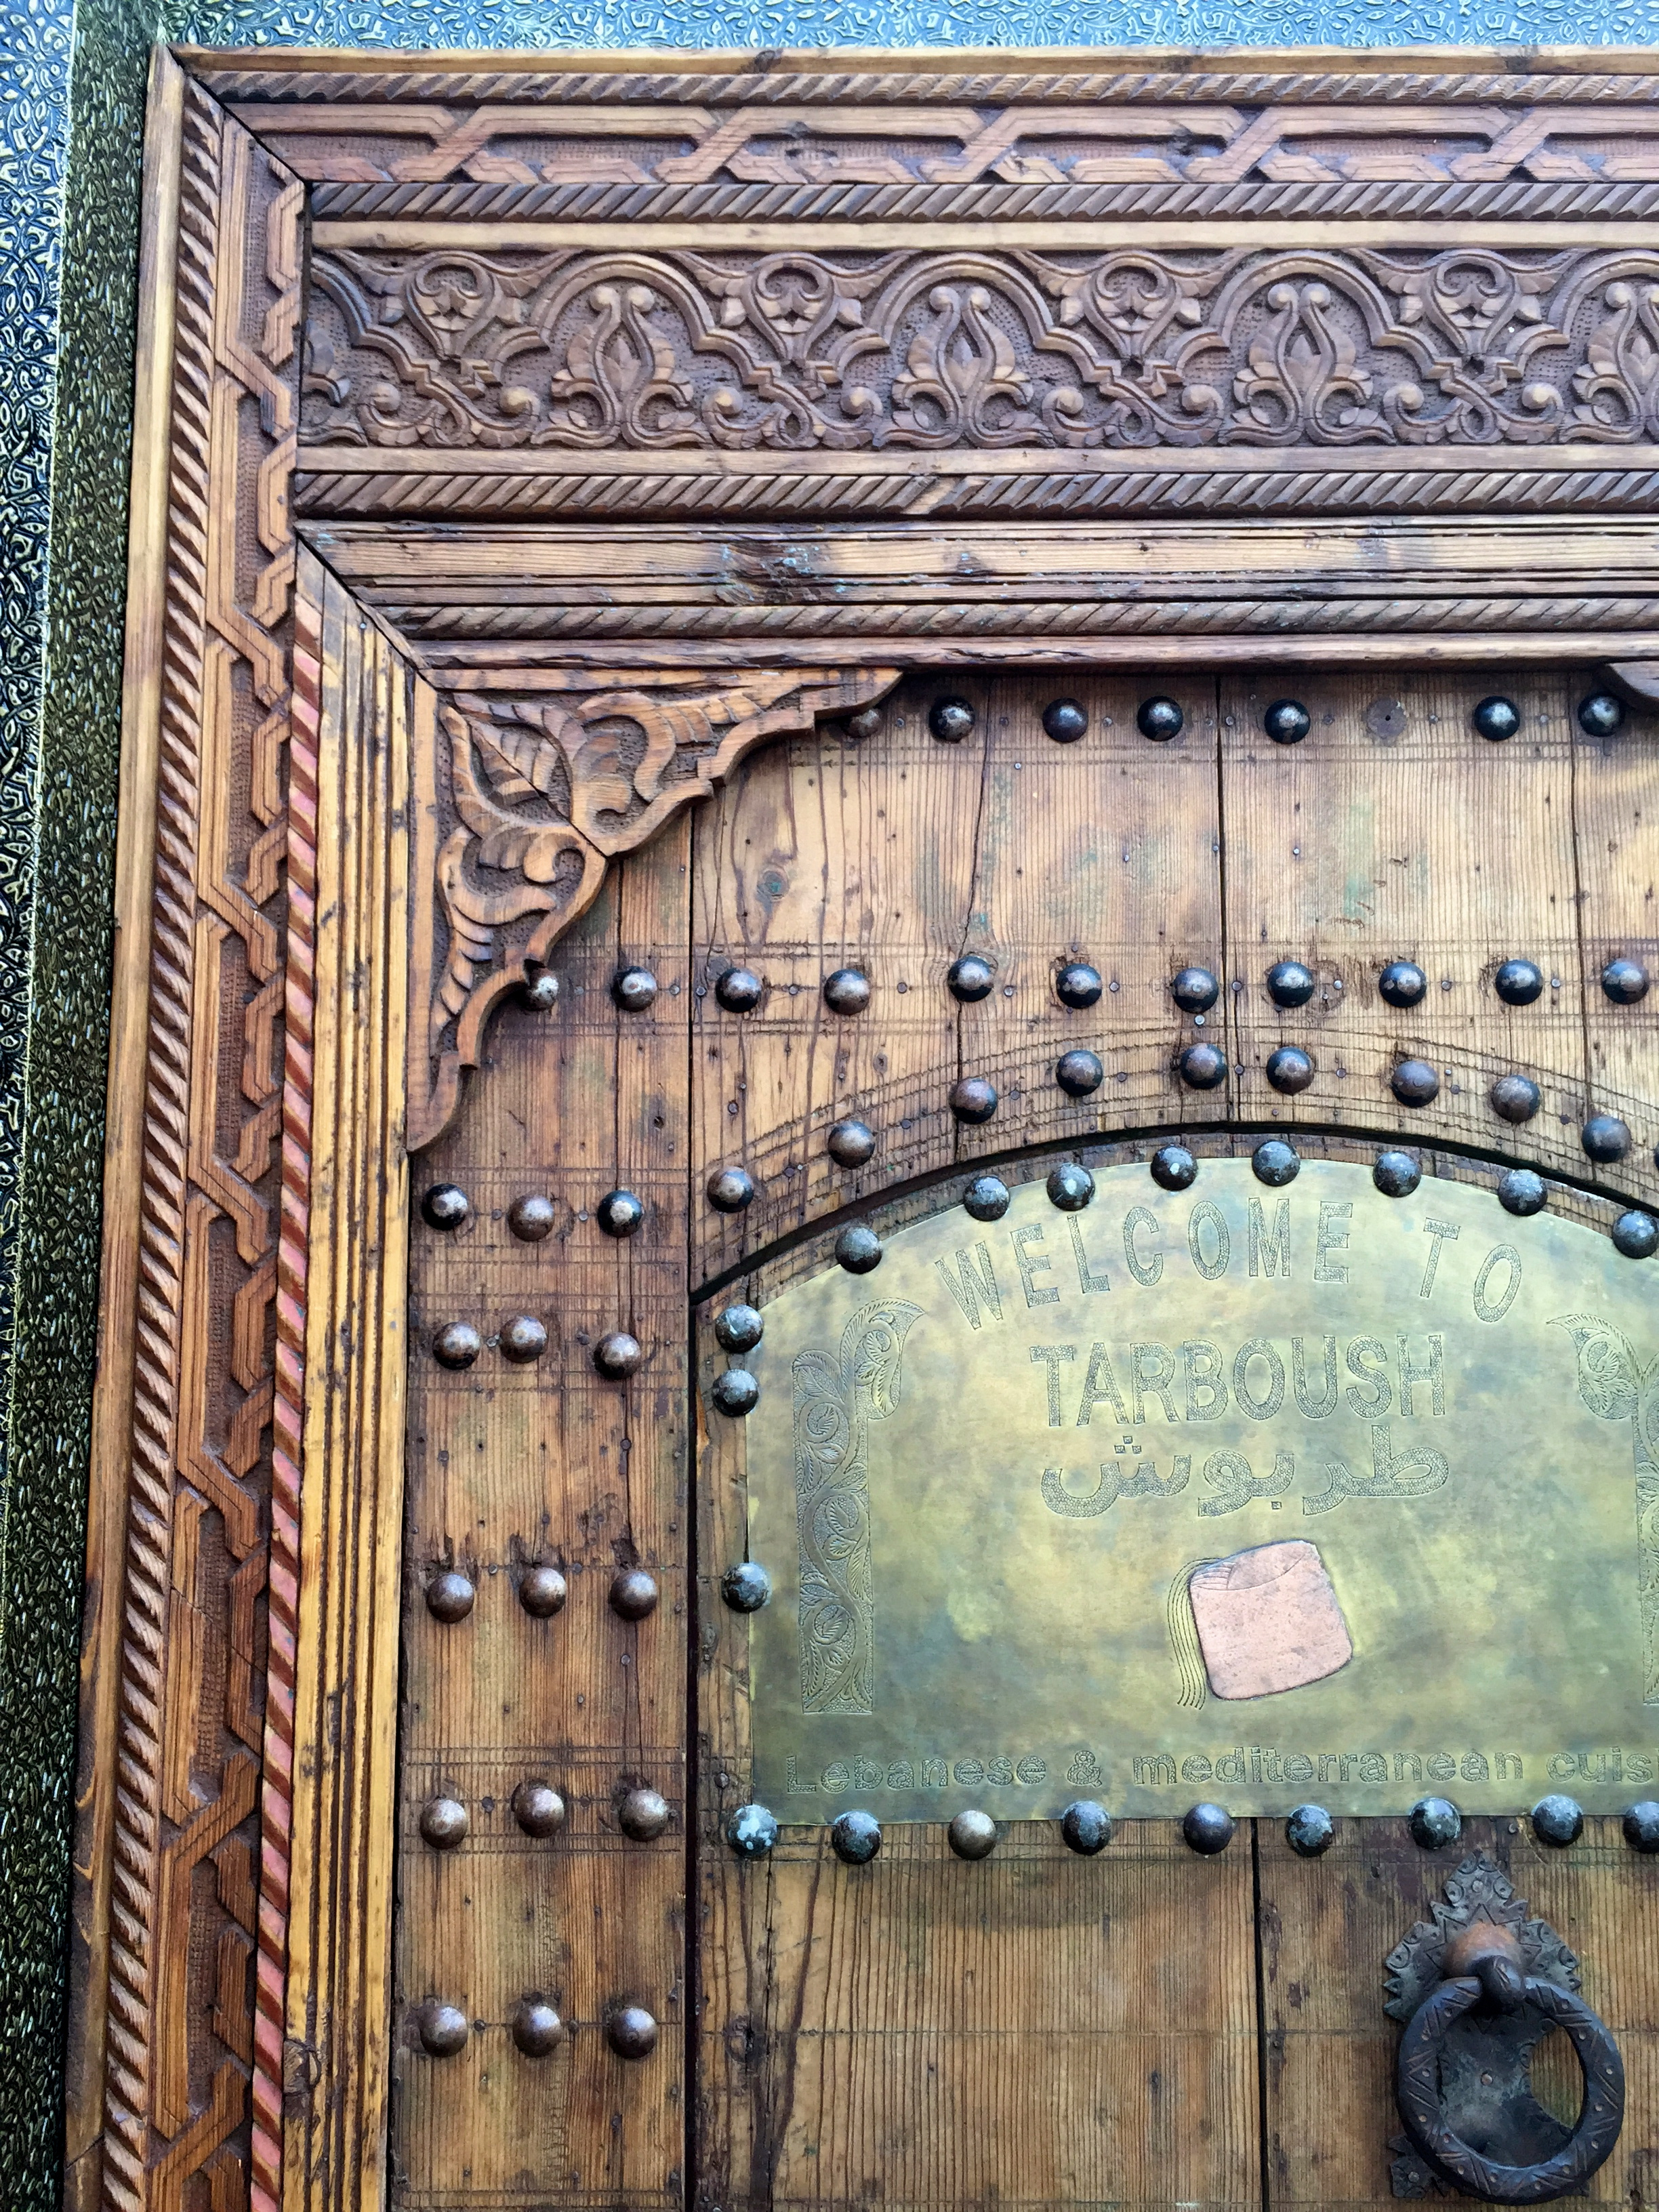 Instead it is the door to a very good Lebanese/Mediterranean restaurant in Watford just on the outskirts of London where I happened to have lunch with ... & Thursday Doors \u2013 Watford | Journey To Ambeth